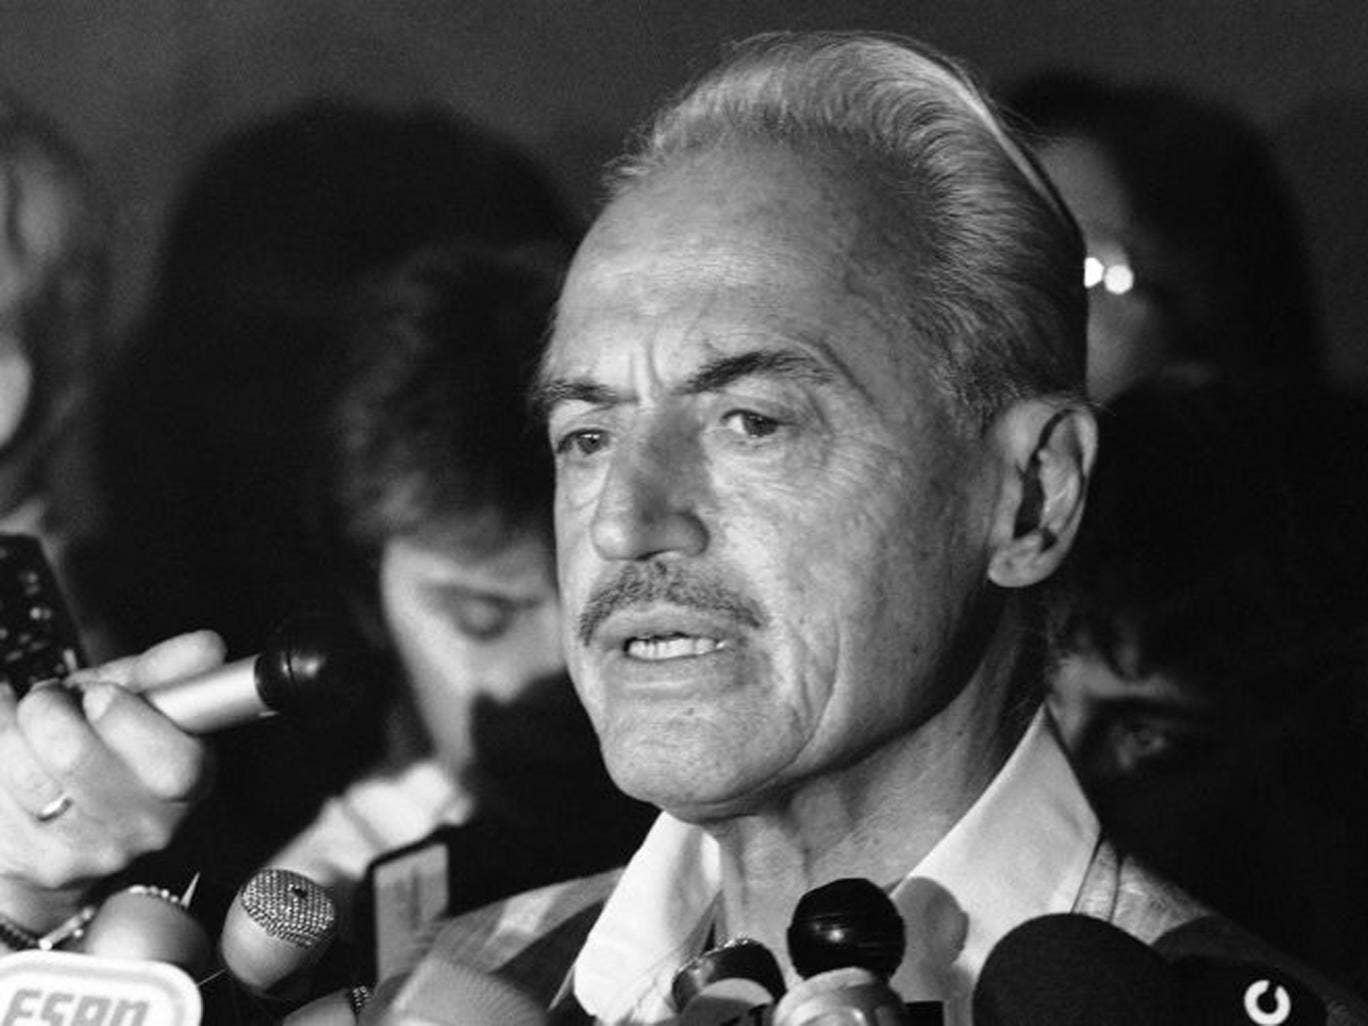 Uncompromising: Miller in 1981 during a baseball players' strike